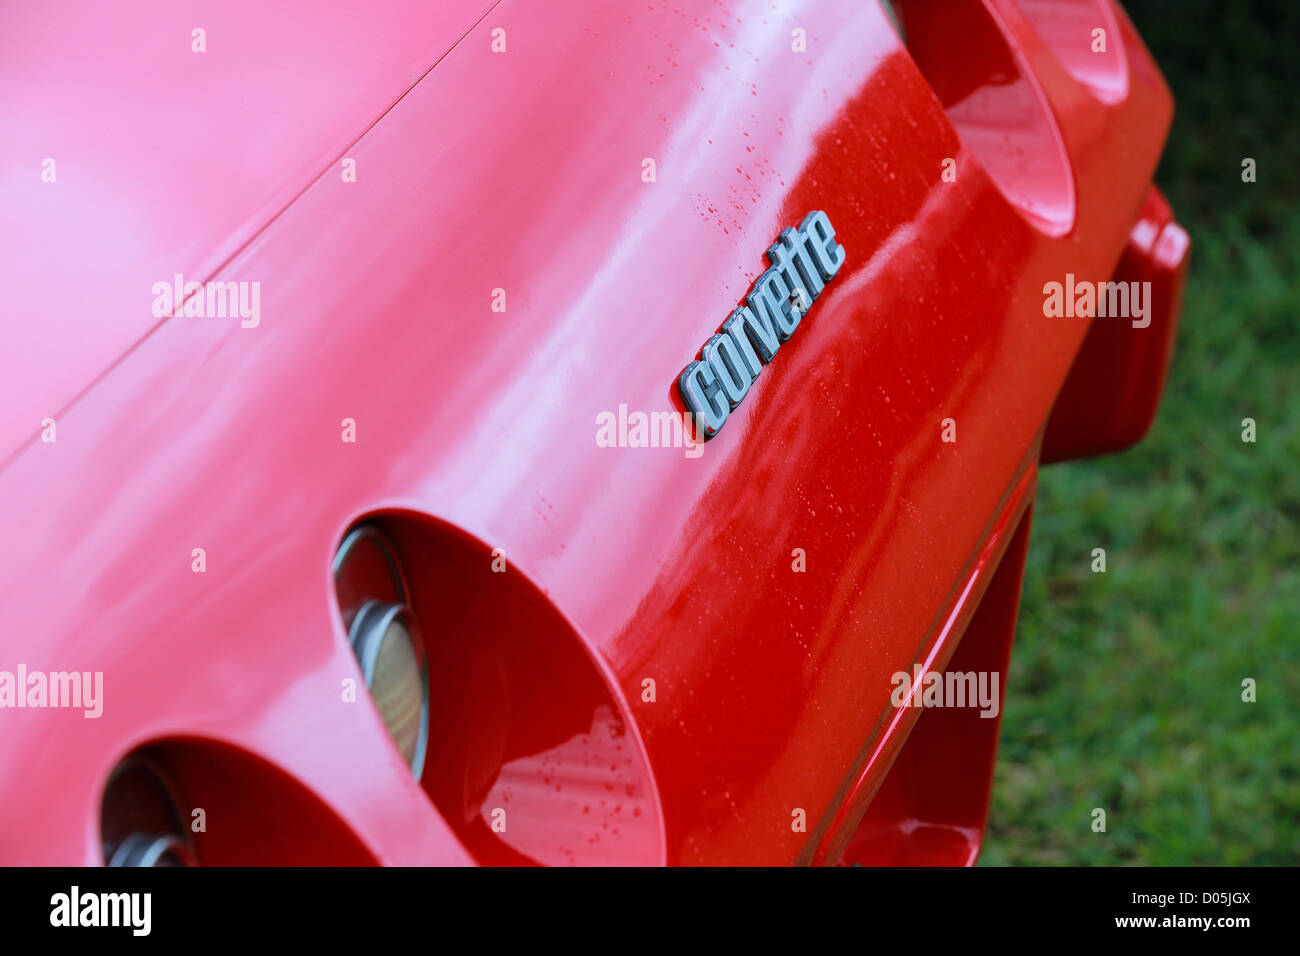 Corvette rear badge detail on red body on display at a rainy Gold Coast Car Show - Stock Image